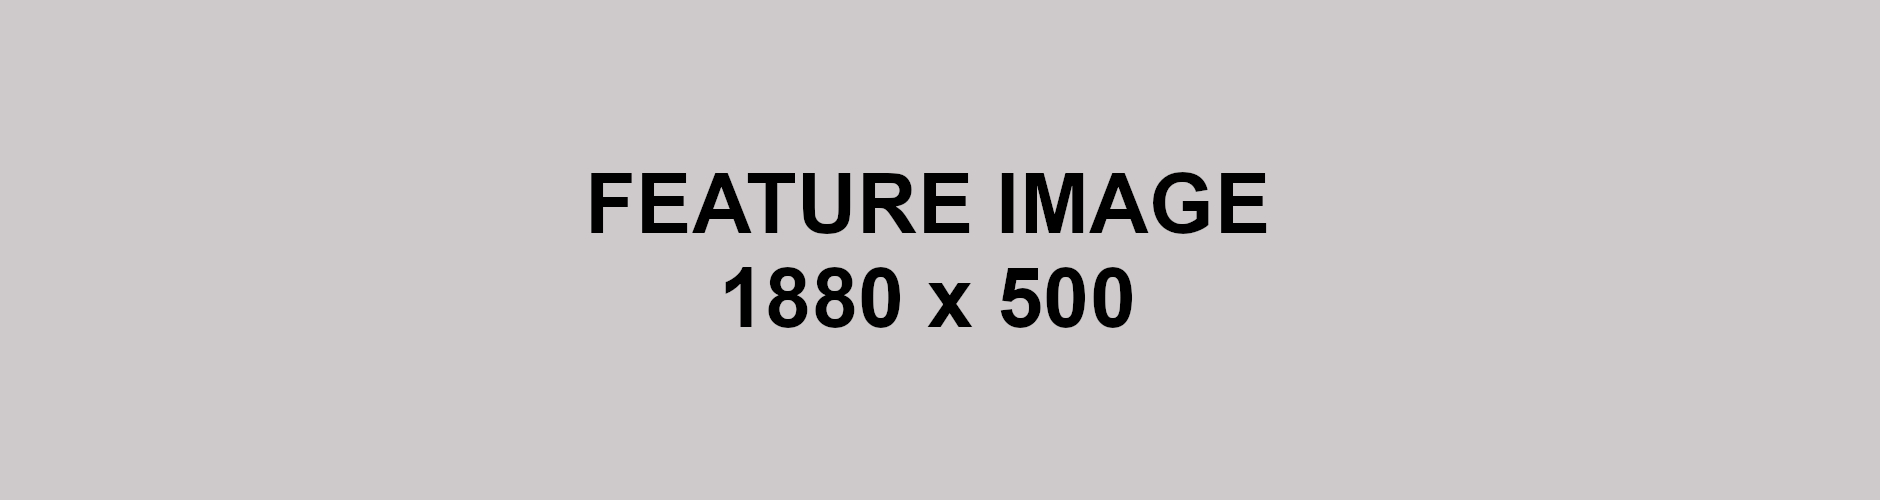 feature_image_size